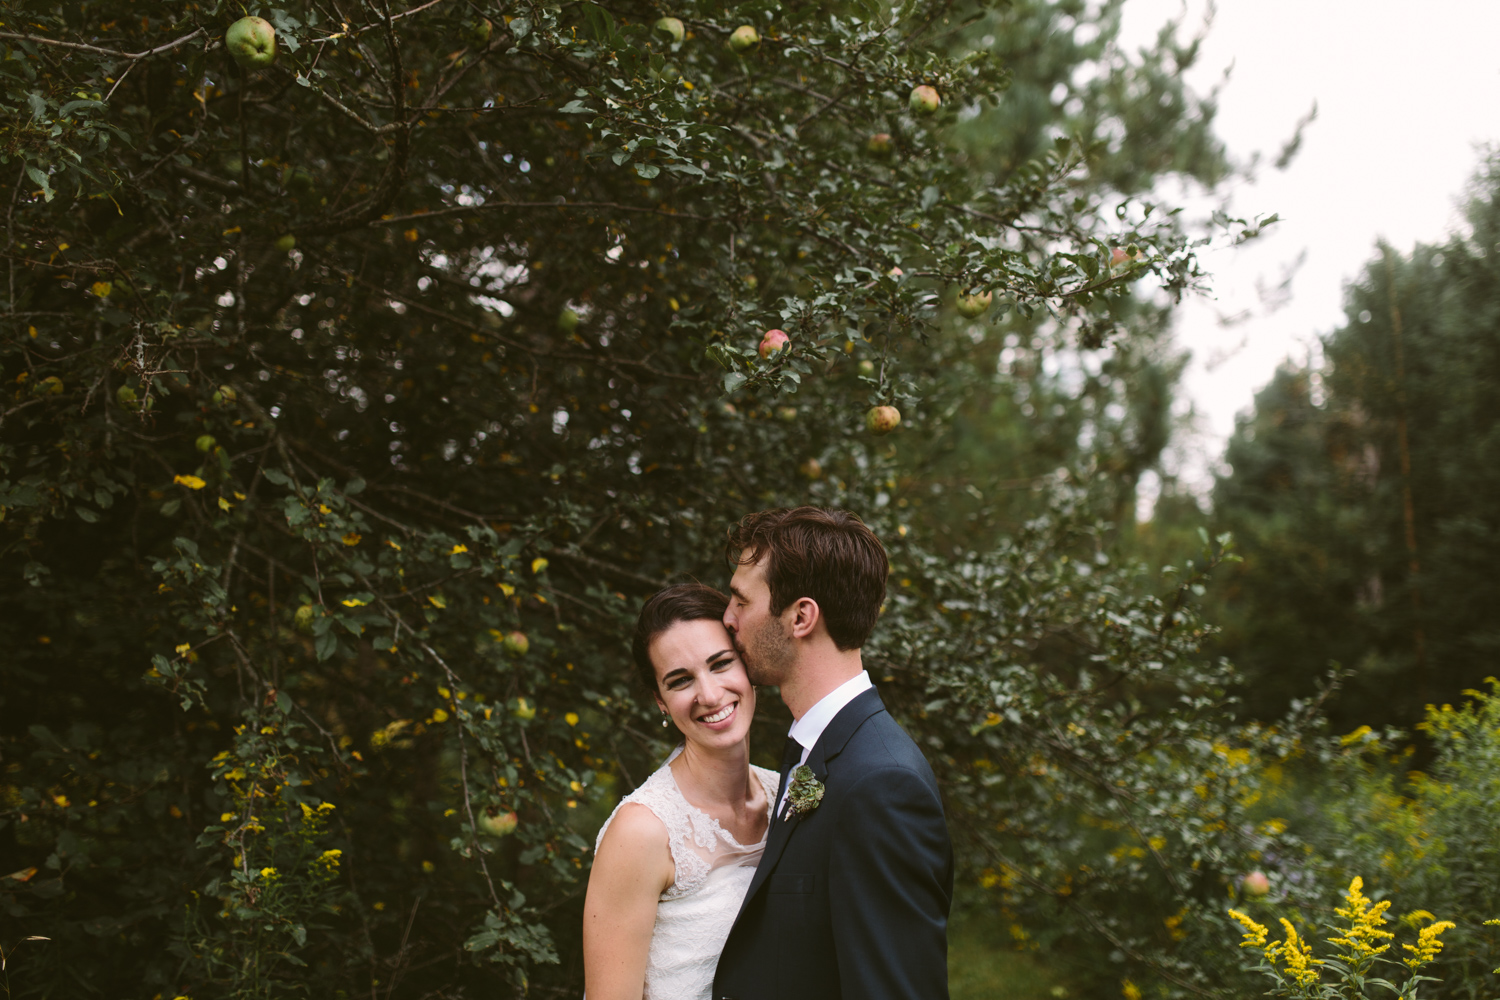 Couple kissing under an apple tree